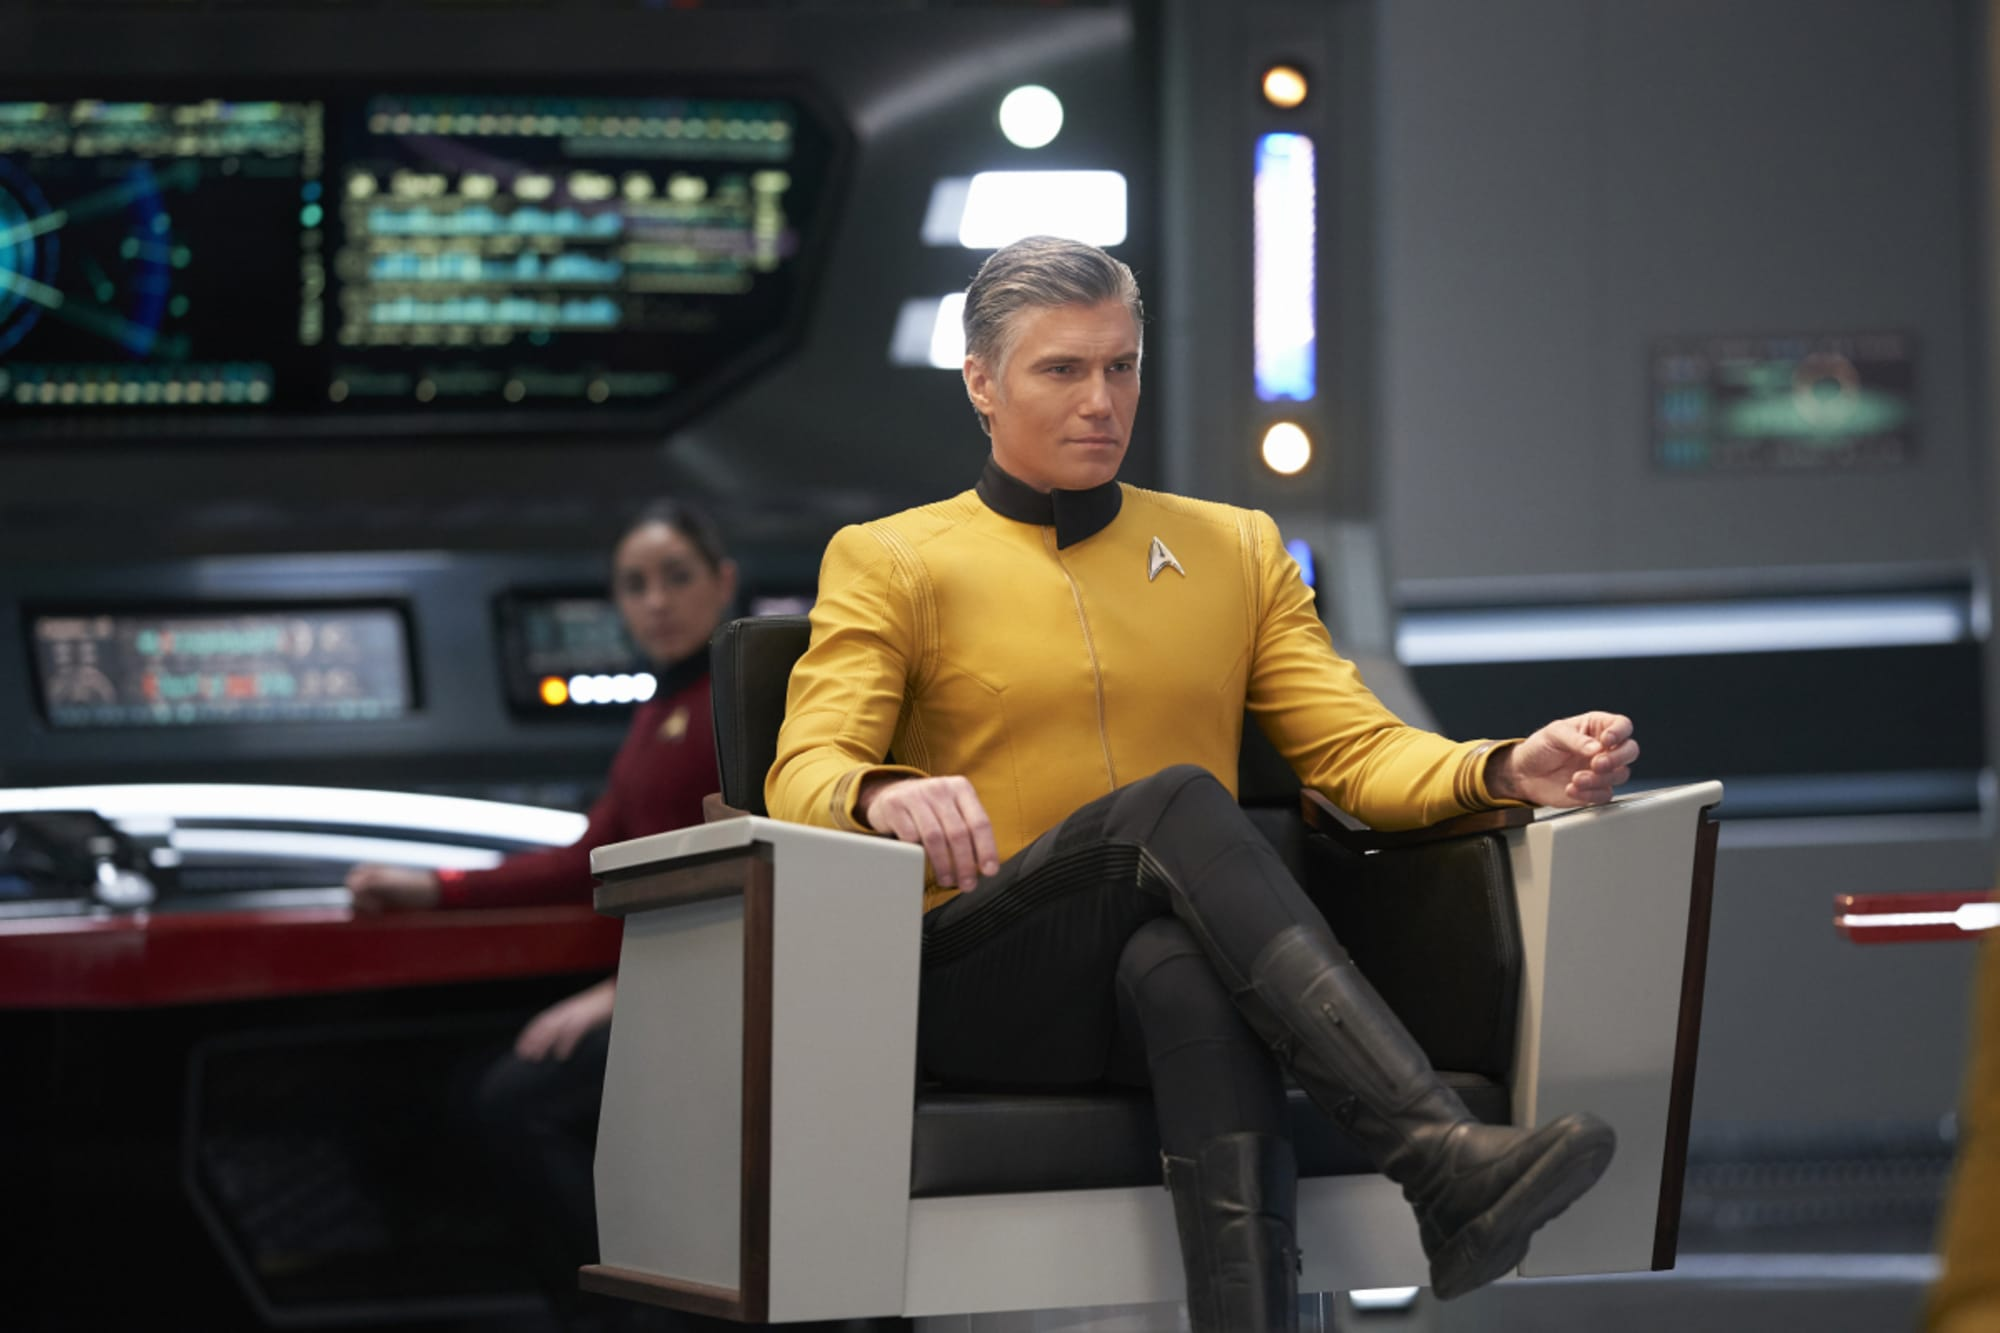 Strange New World wraps shooting nearly 56 years after second Star Trek pilot